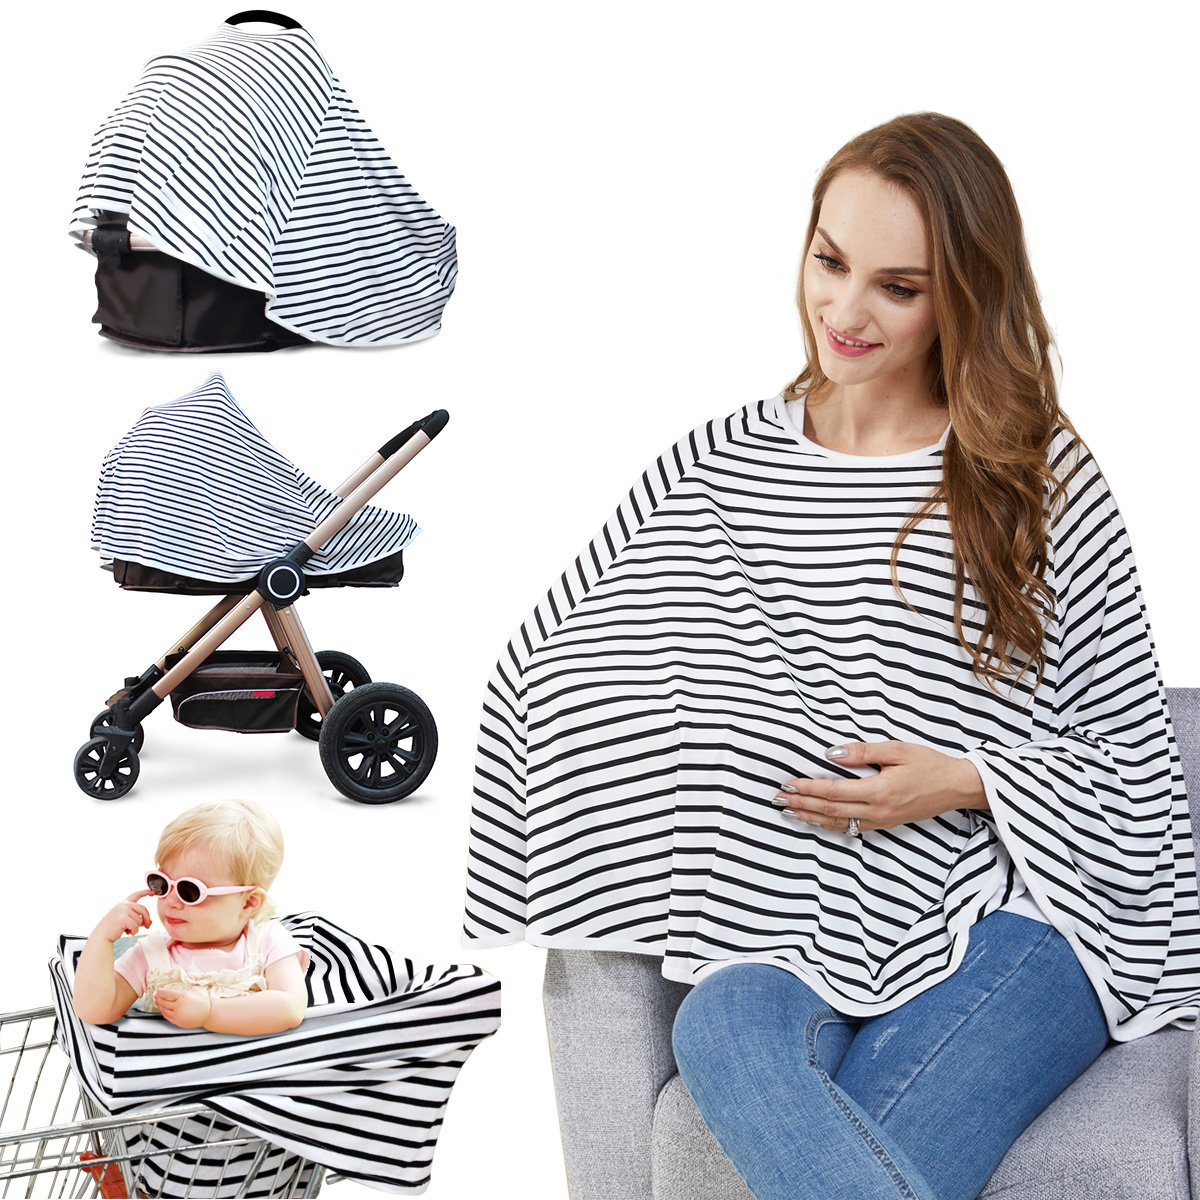 Baby Nursing Cover & Nursing Poncho - Multi Use Cover for Baby Car Seat Canopy, Shopping Cart Cover, Stroller Cover, 360° Full Privacy Breastfeeding Protection, Baby Shower Gifts for Boy&Girl LUCINE